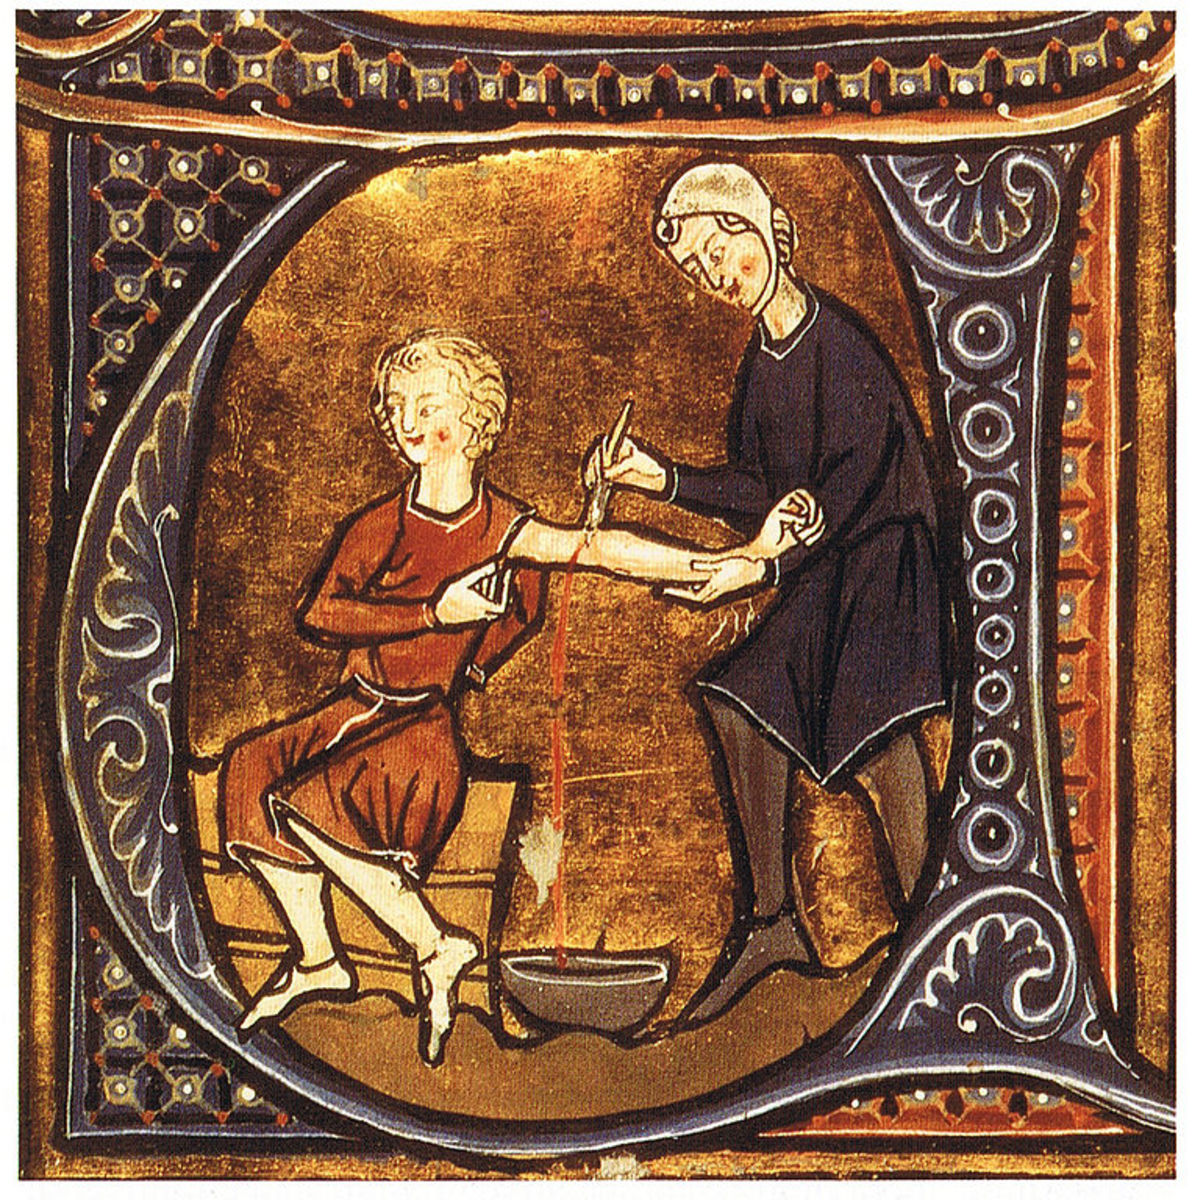 A doctor is administering ancient medicine to a patient.